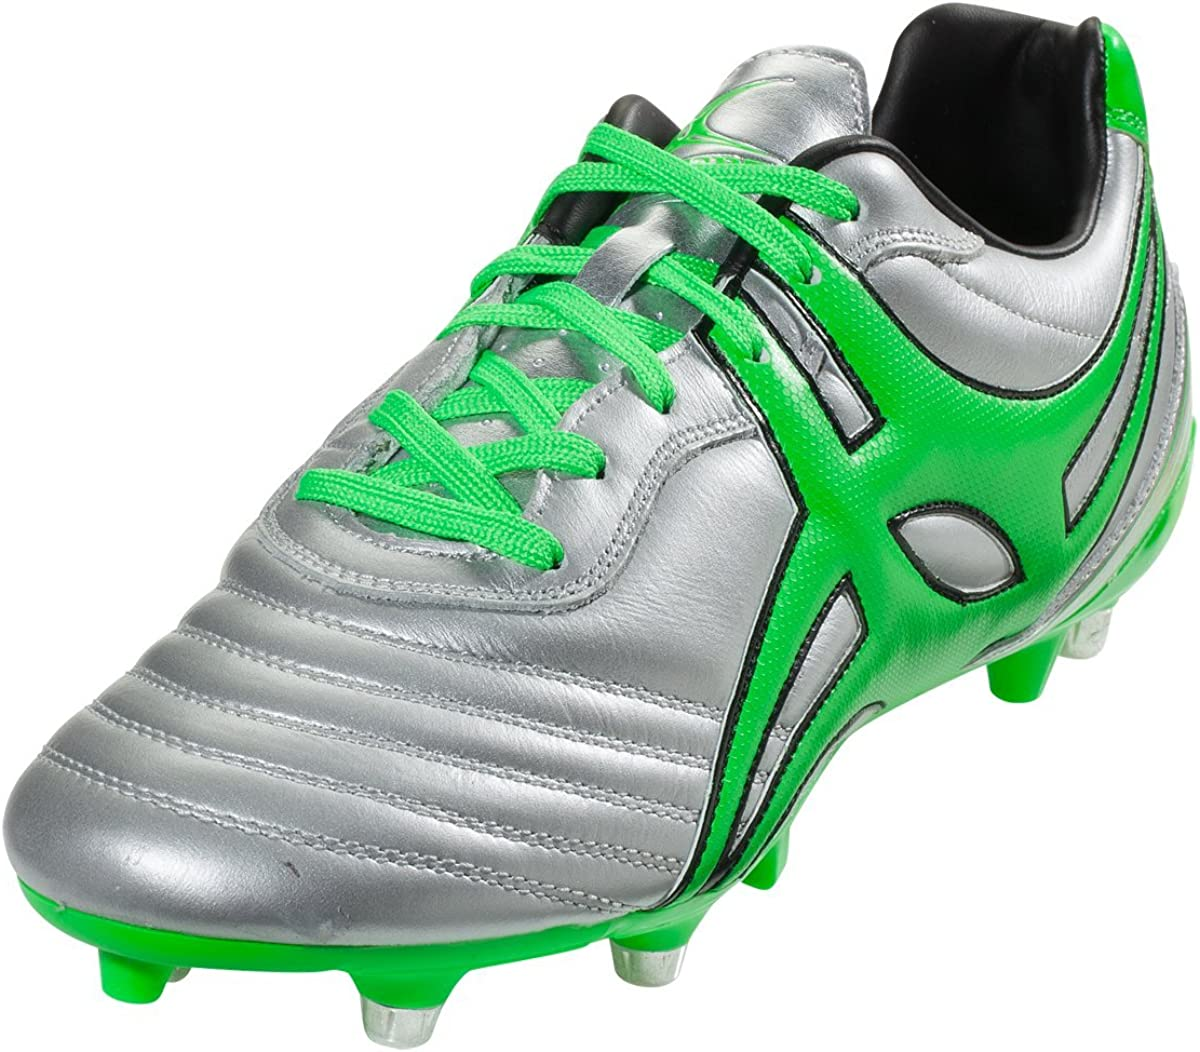 Gilbert Jink Pro 6 Stud Rugby Fashionable Boot Silver cheap